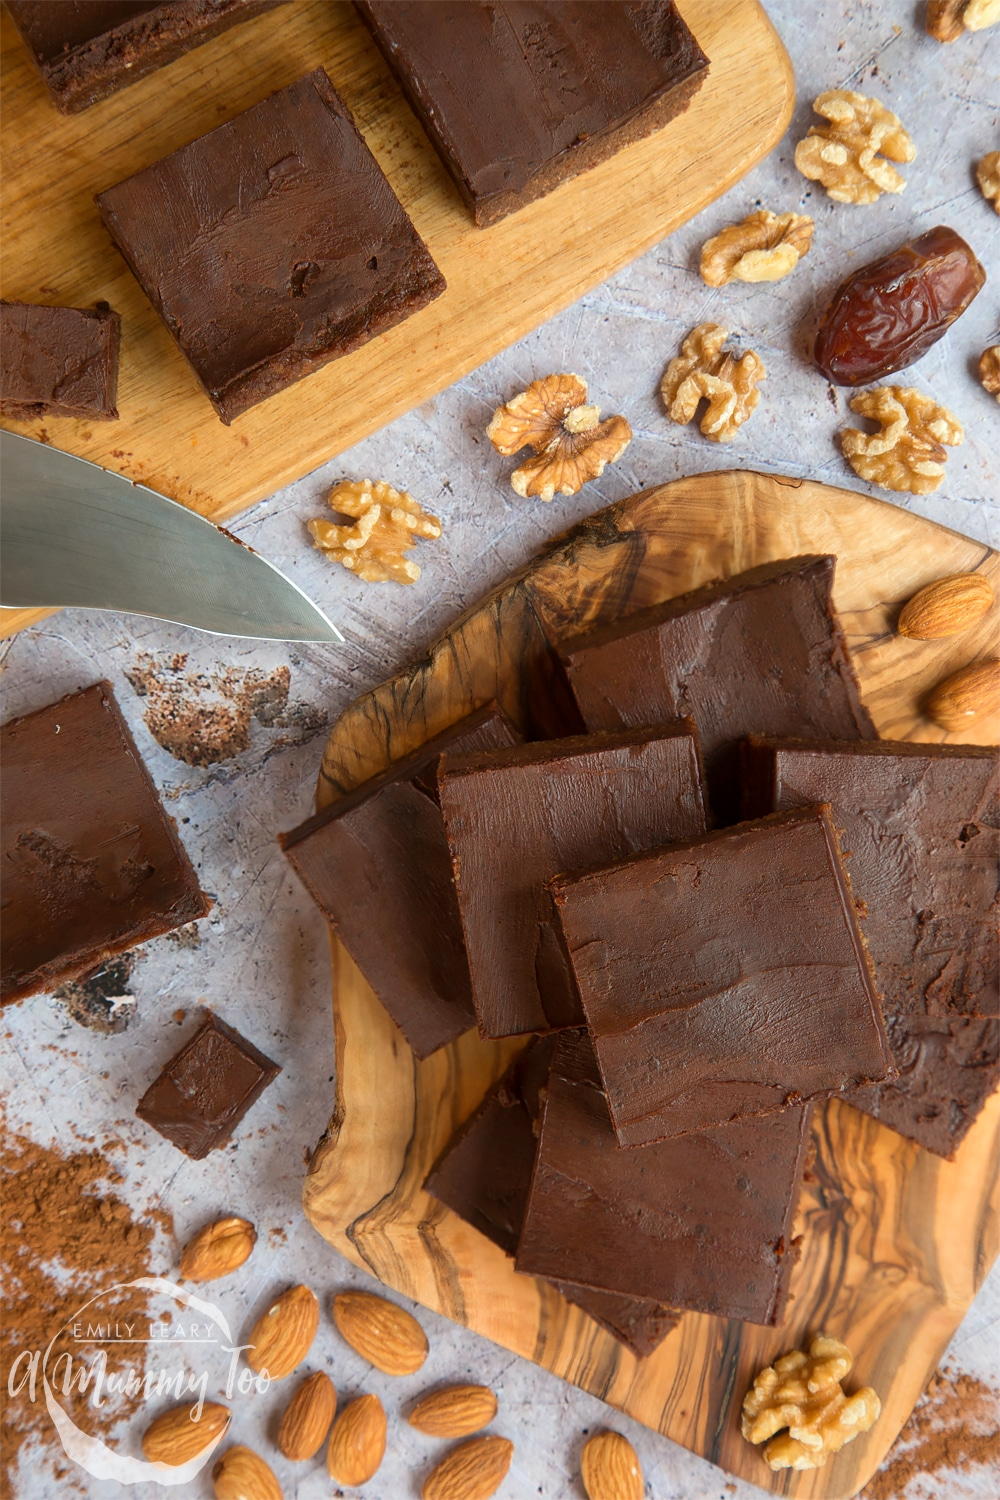 These healthier chocolate bars are vegan, gluten and dairy free - and full of healthy fats